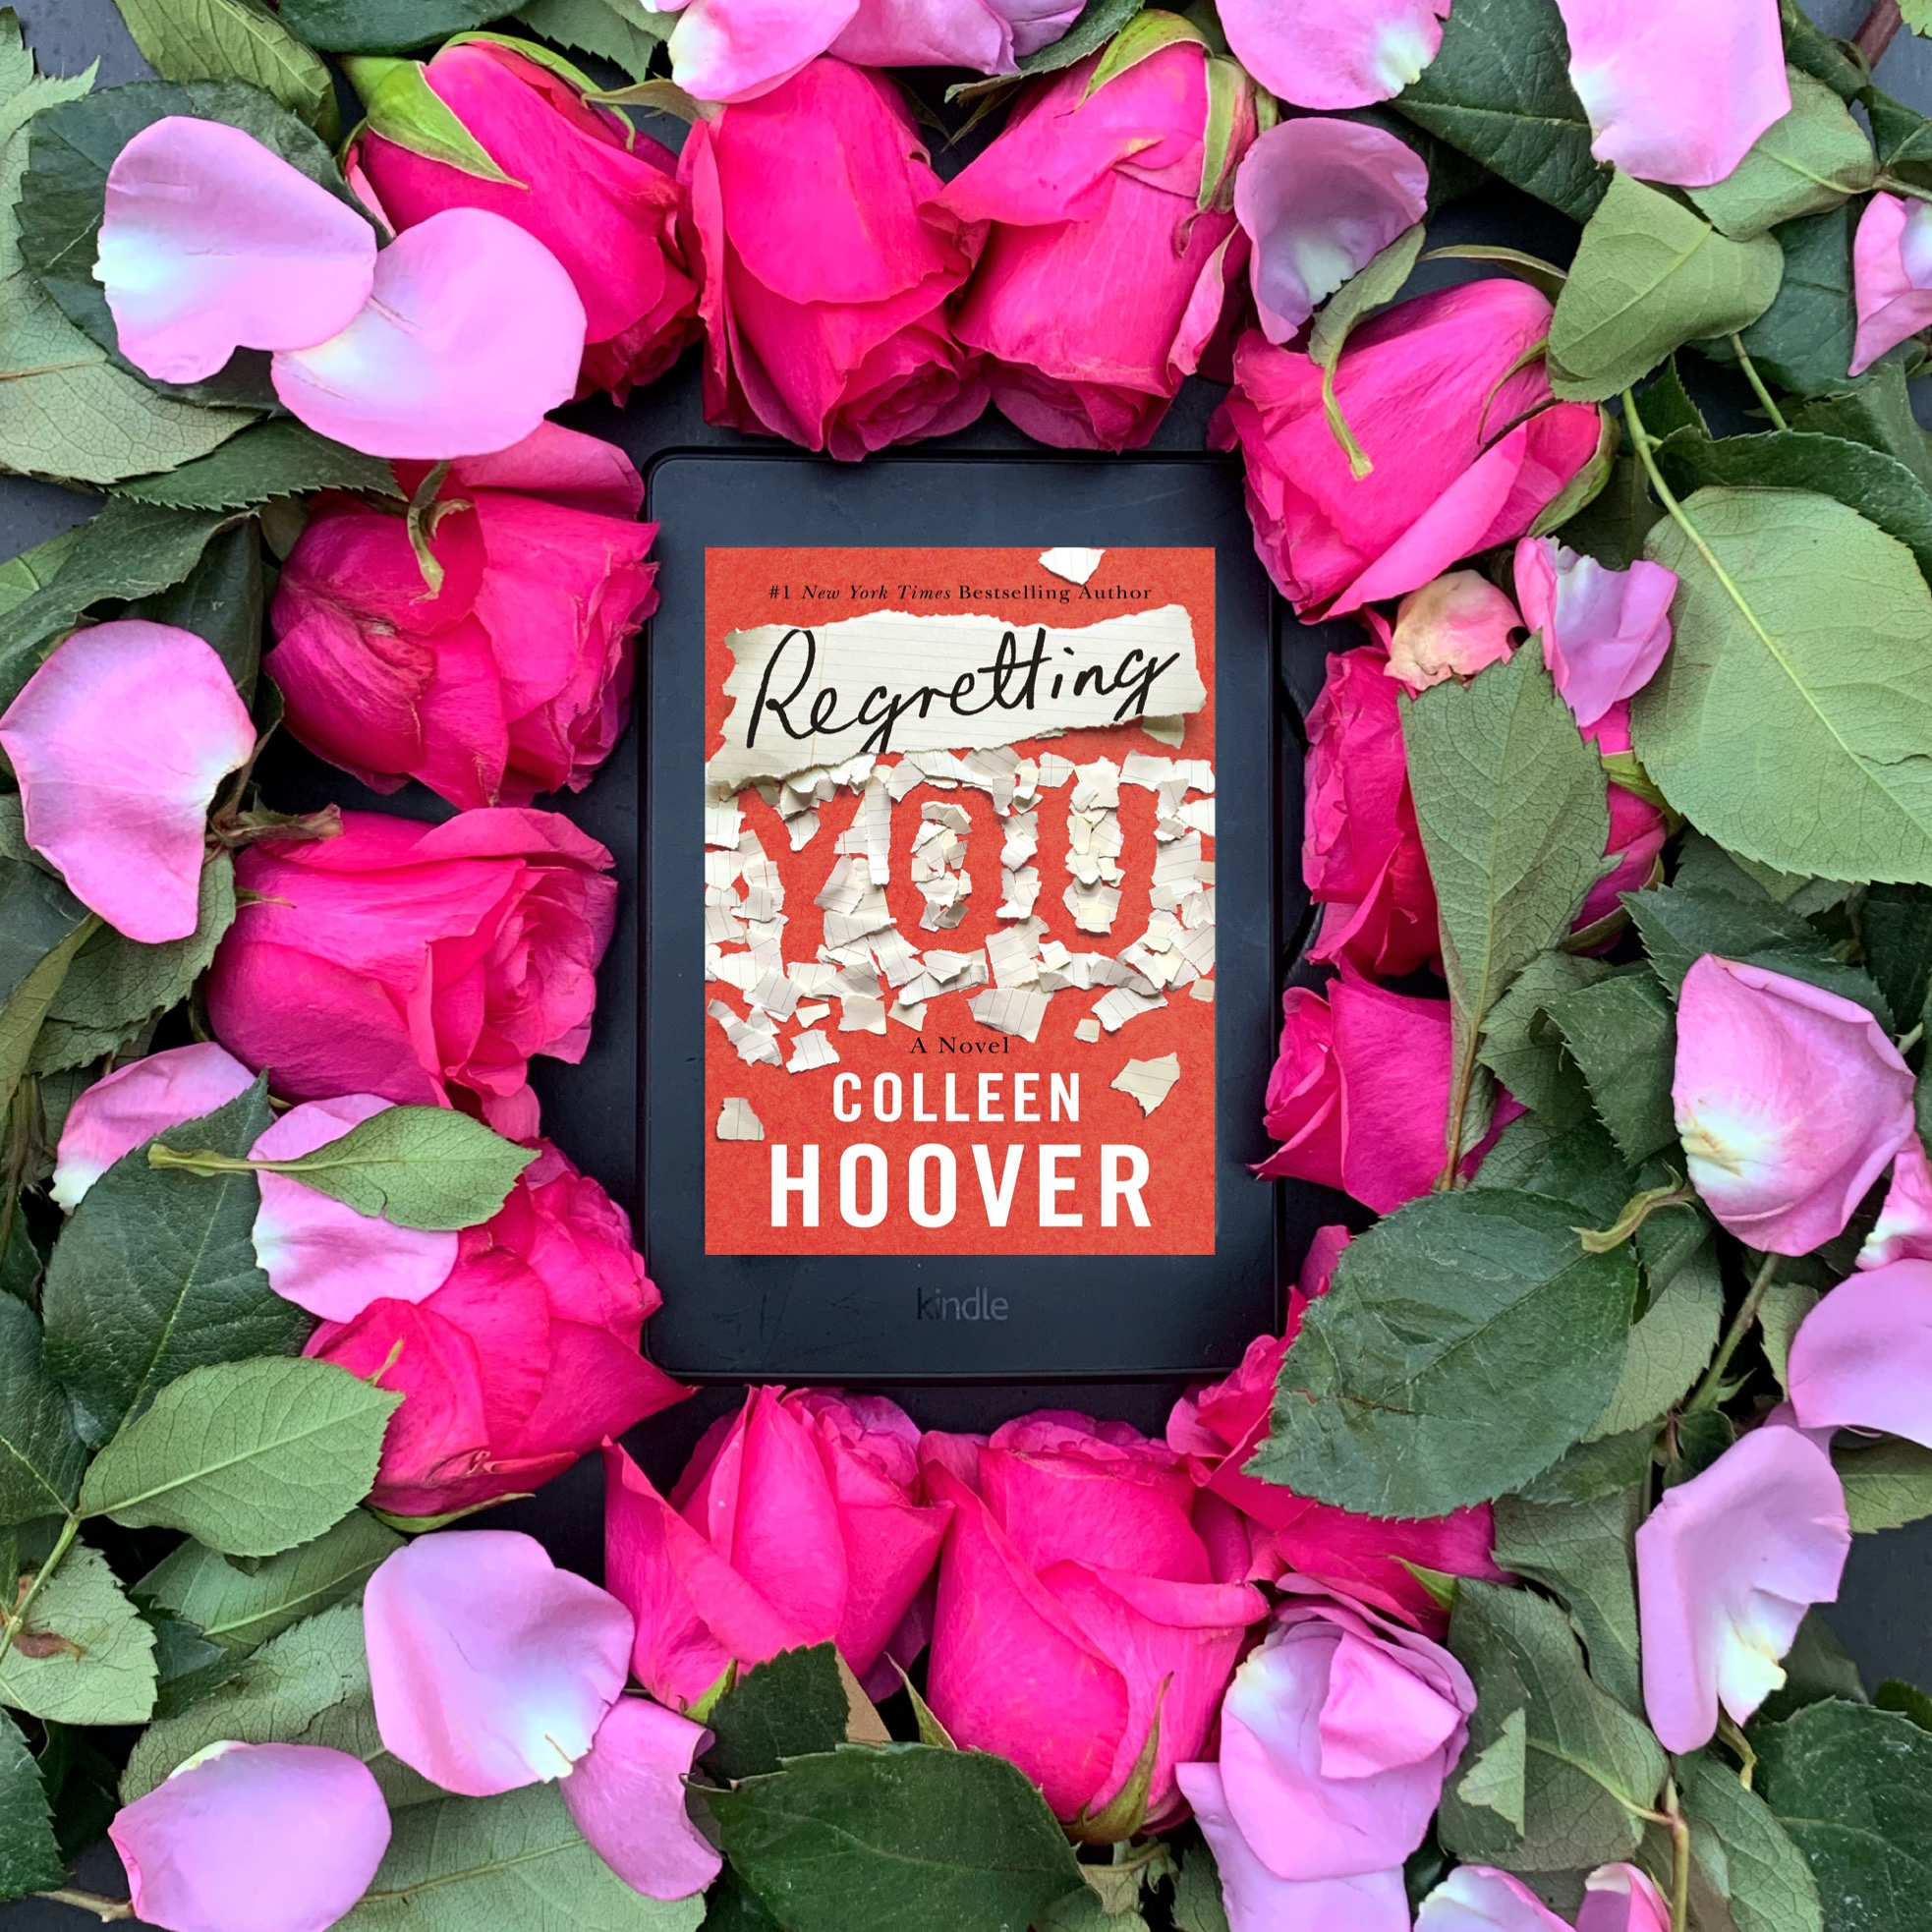 colleen hoover regretting you